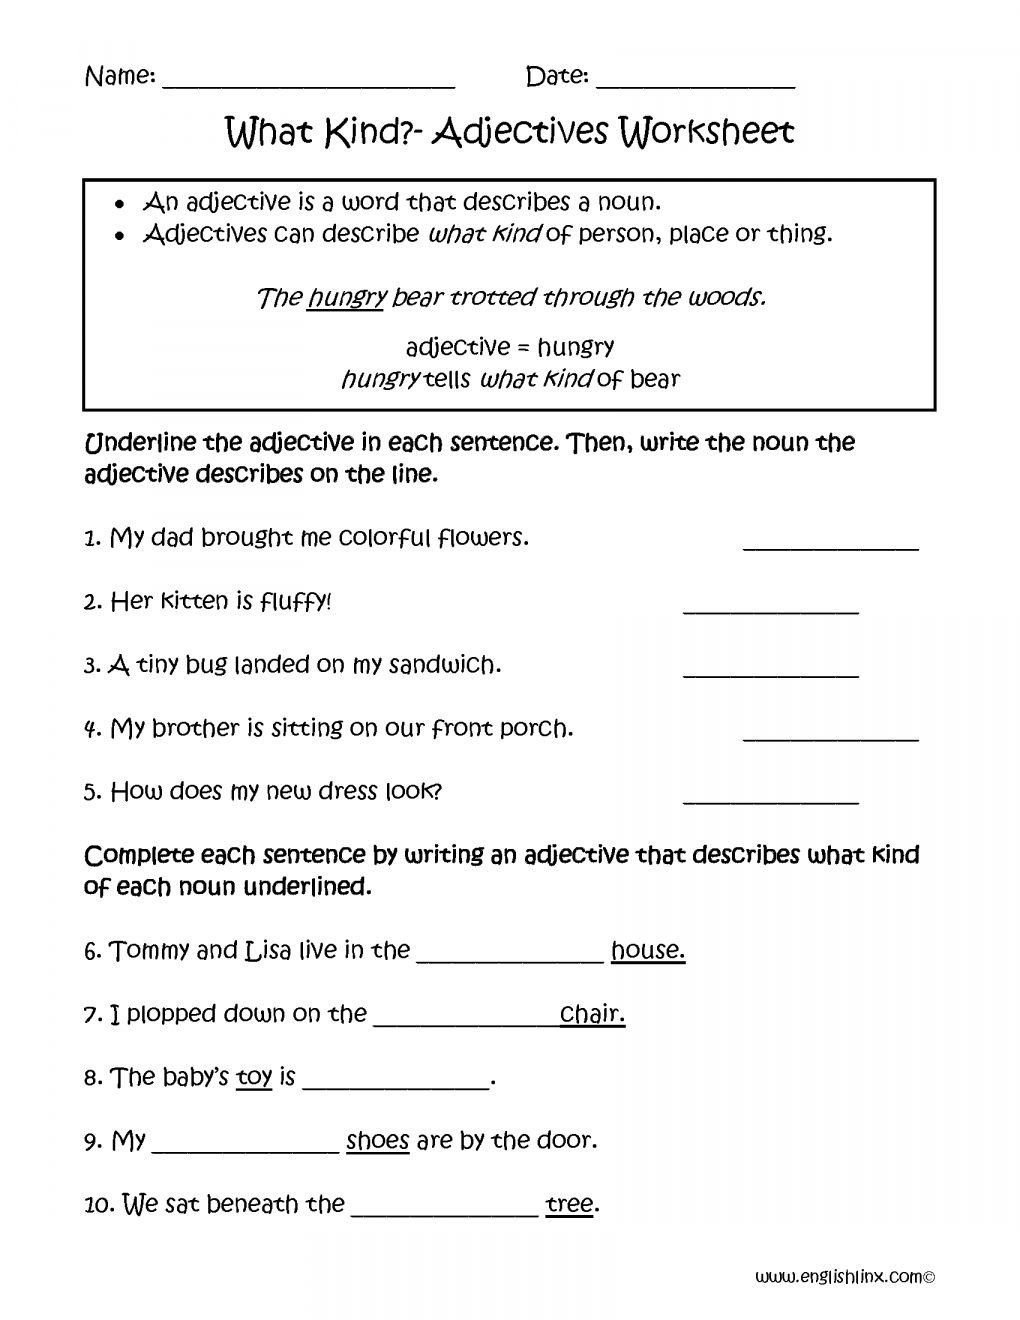 Relative Adverbs Worksheet 4th Grade Free Adjective Worksheets 4th Grade